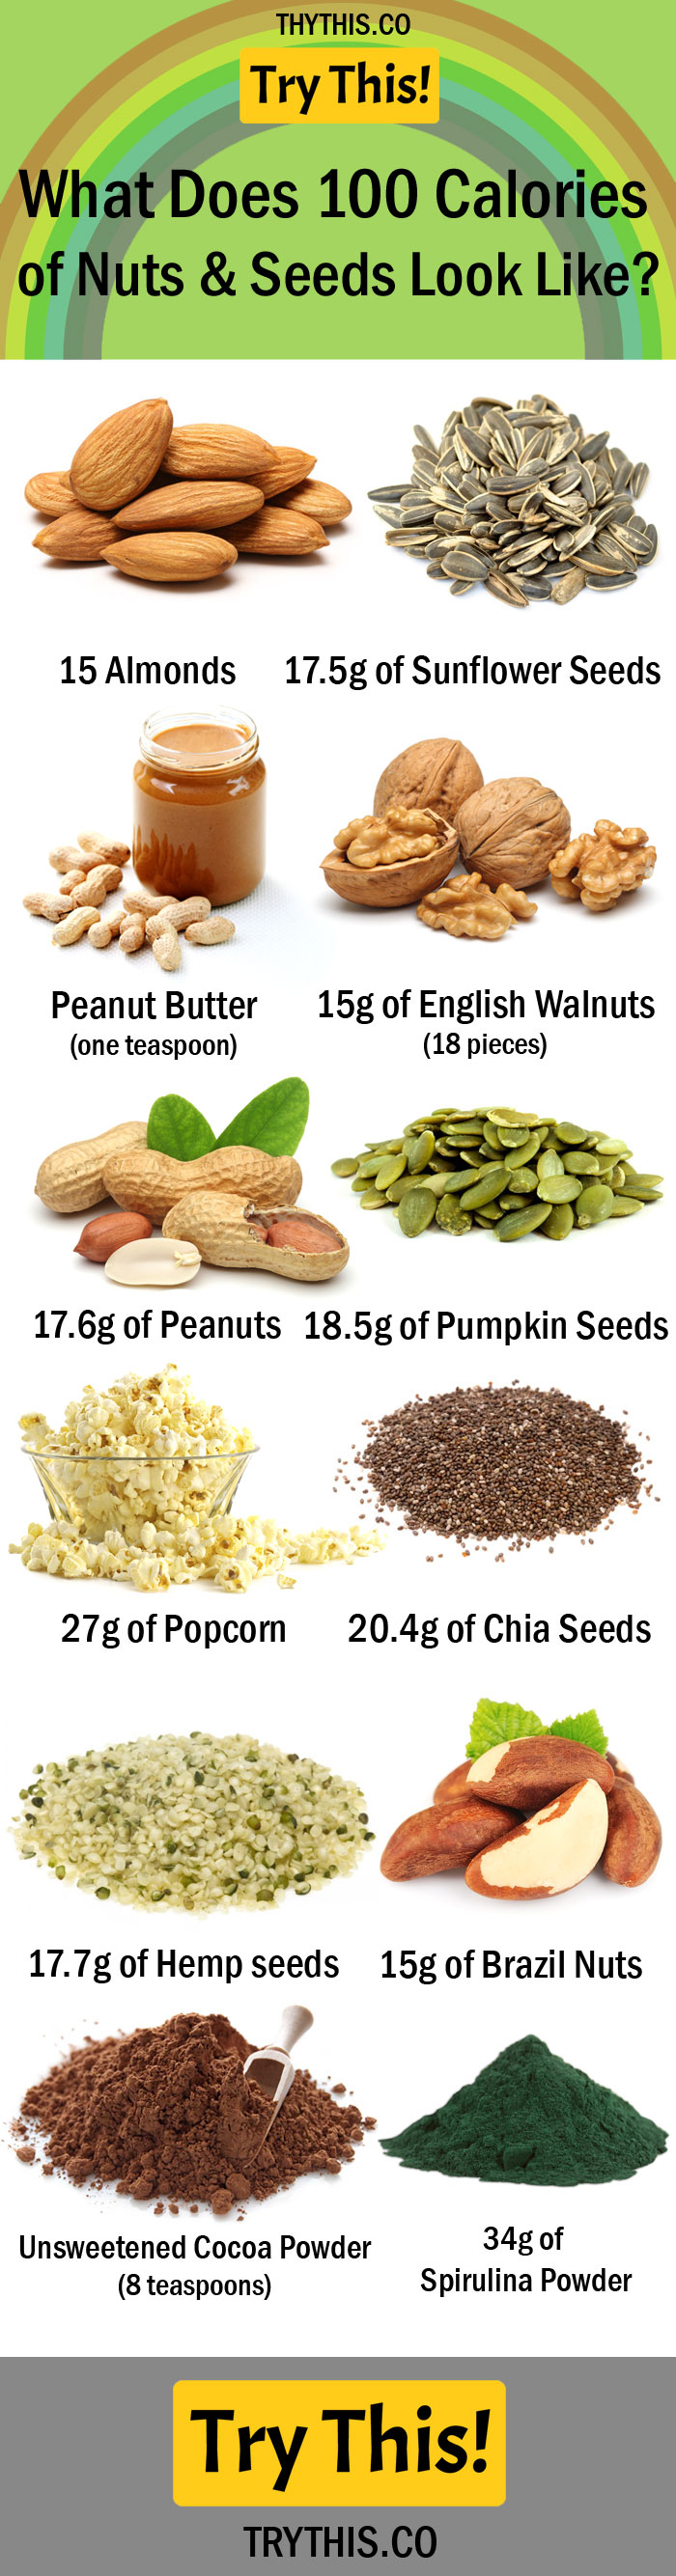 How many calories are in nuts